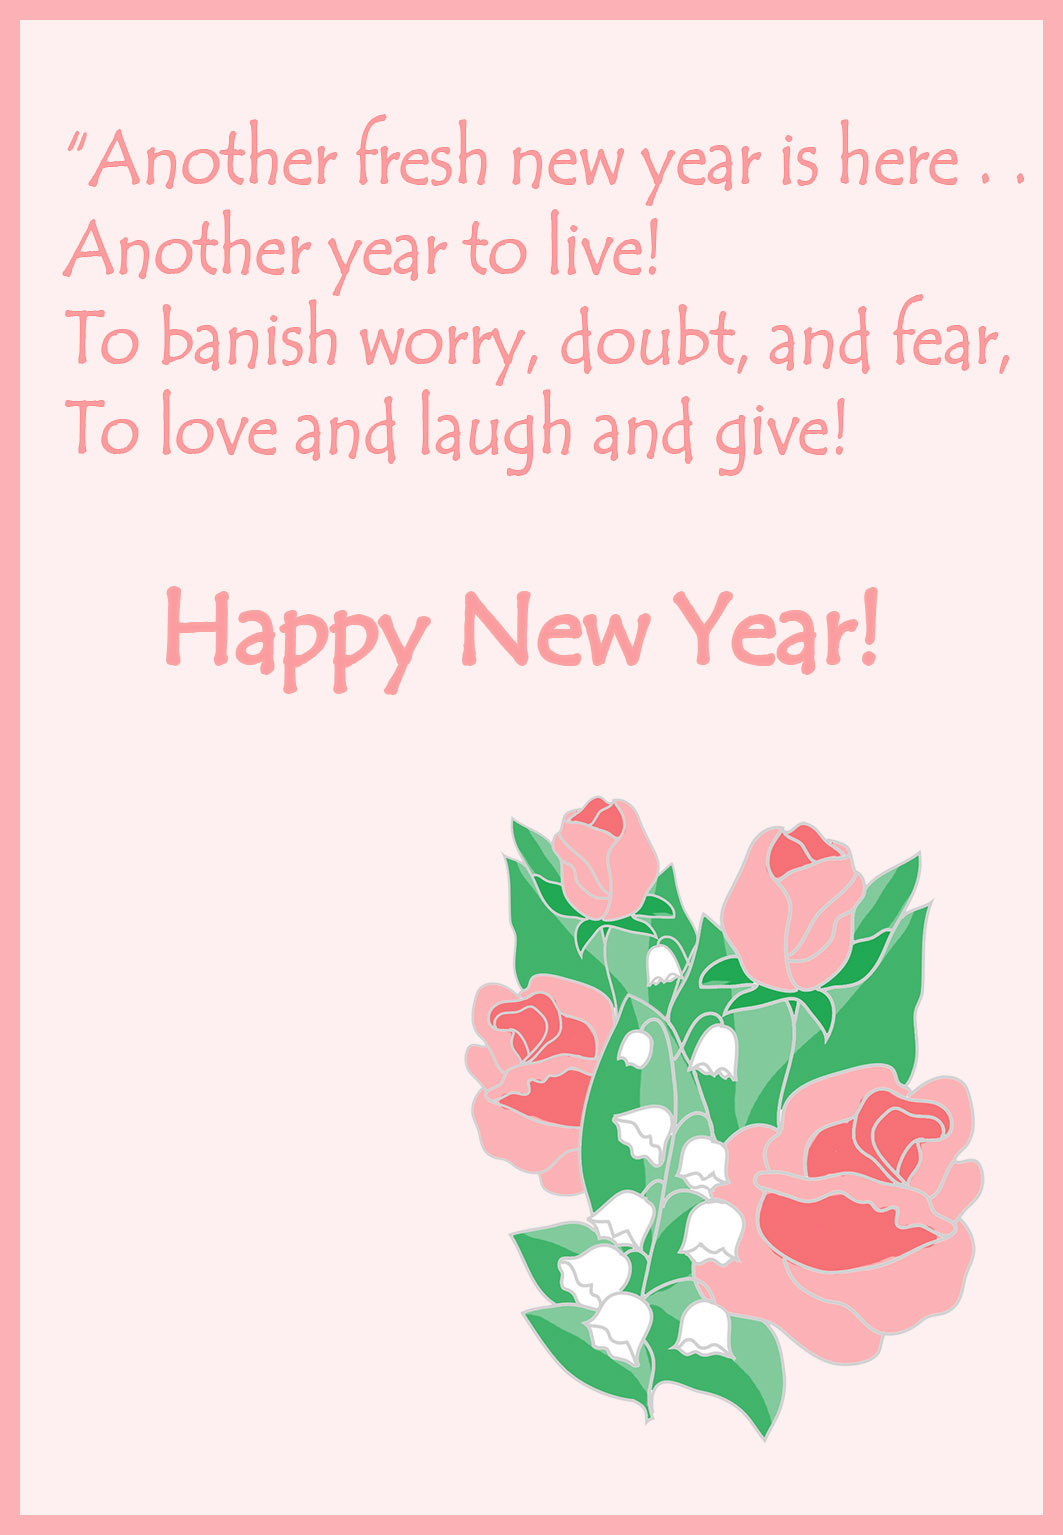 New Year card with roses and wishes